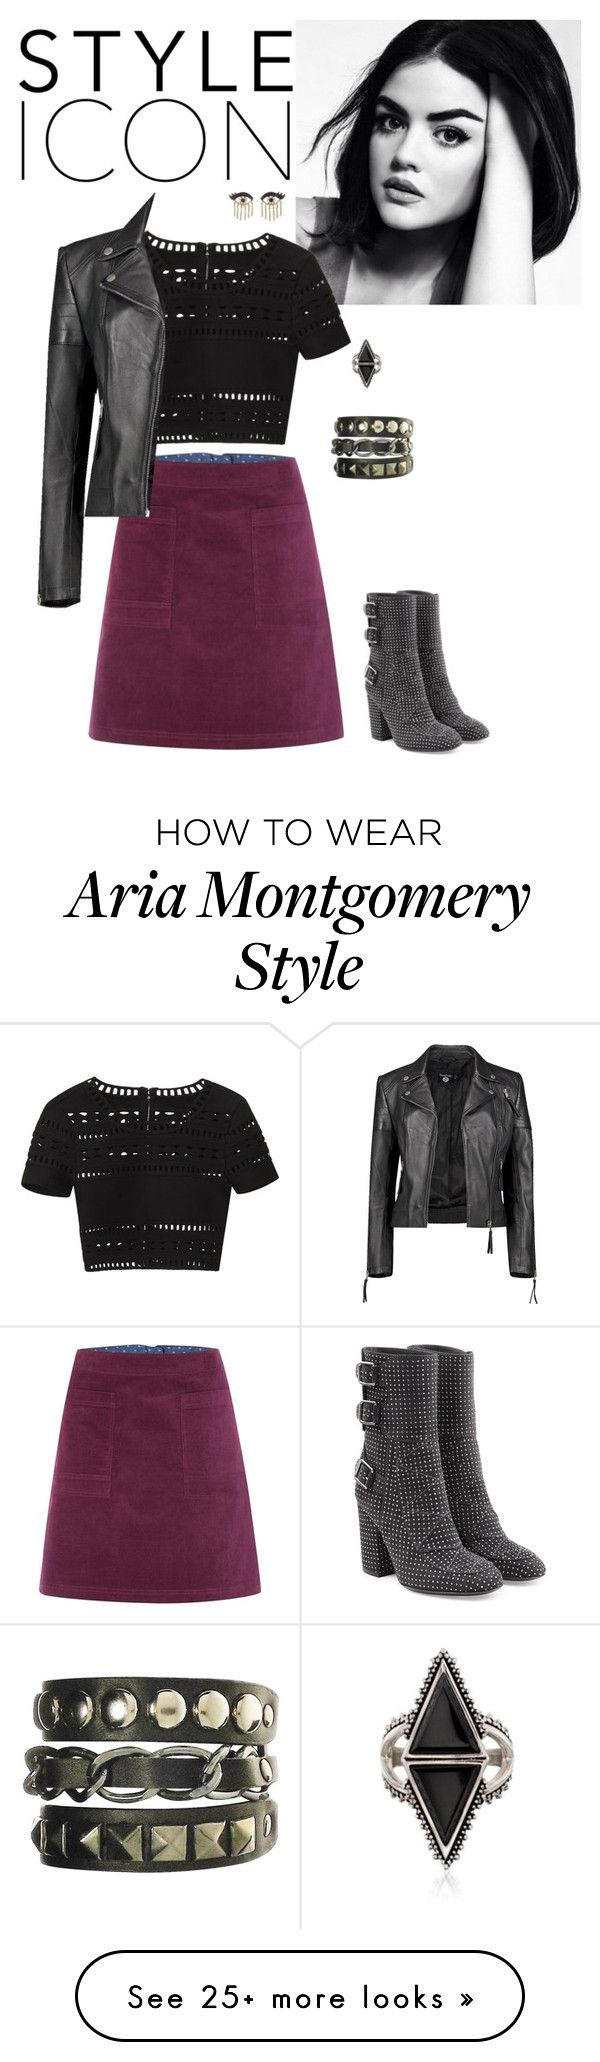 """Aria Montgomery"" by hayleyl22 on Polyvore featuring Laurence Dacade, White Stuff, Sydney Evan, Hervé Léger, Boohoo and Ross-Simons"